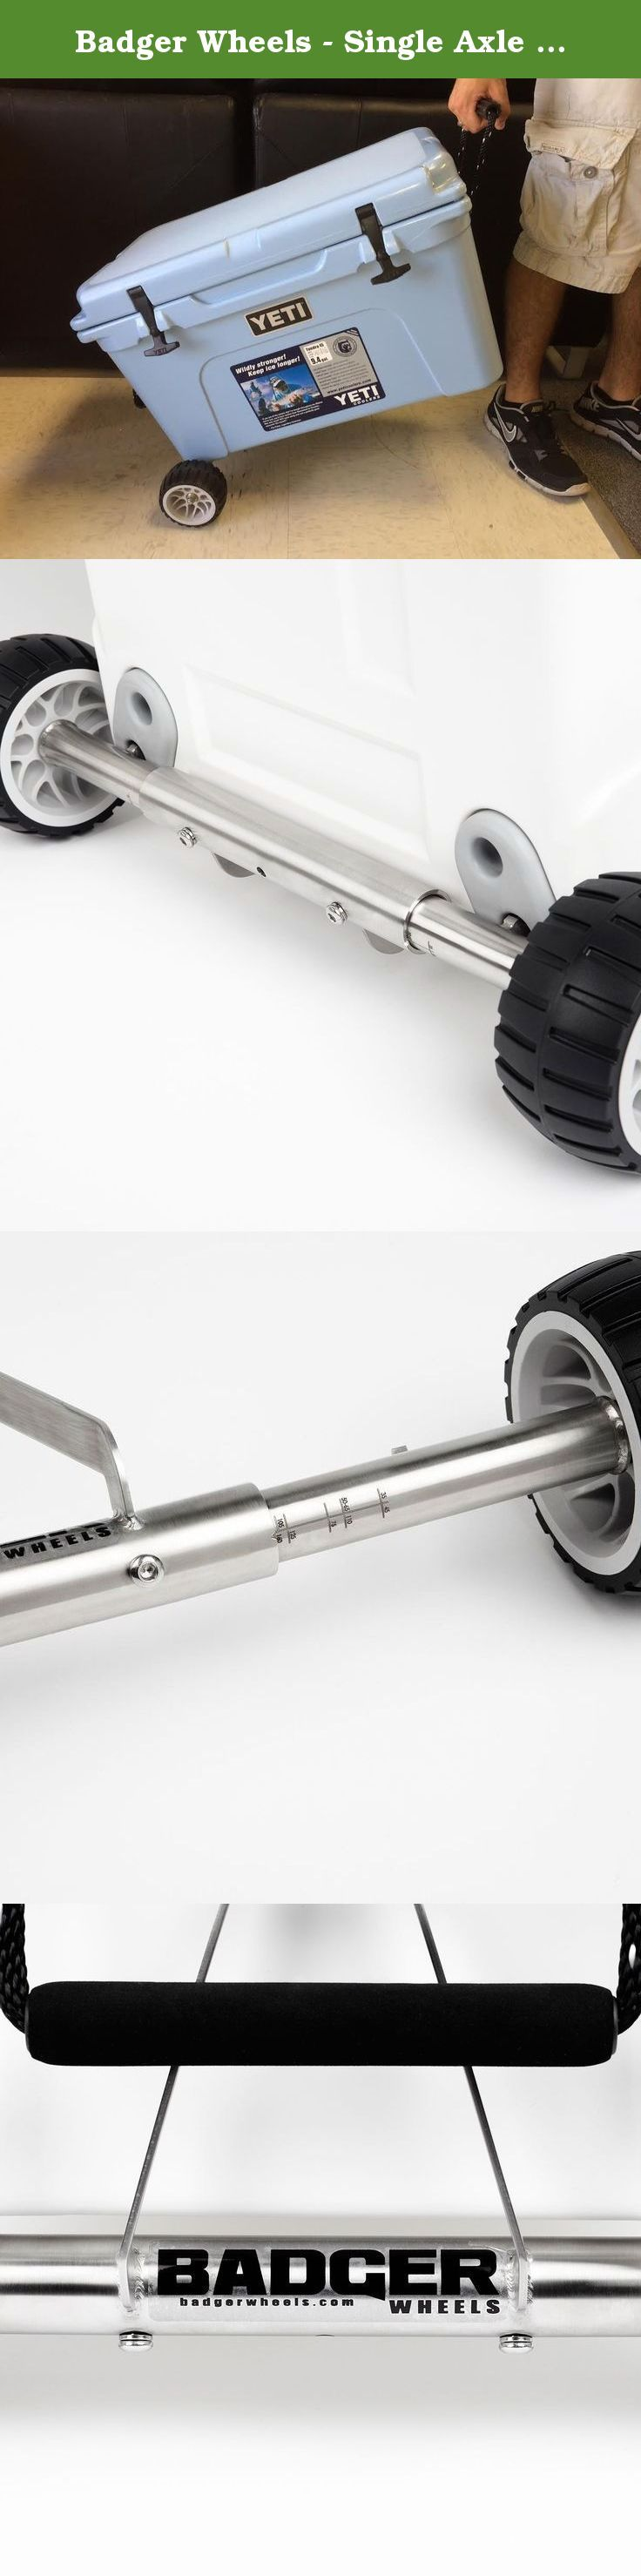 Badger Wheels - Single Axle for Yeti Tundra 35-160. Badger WheelsTM (patent pending) for YETI® Tundra coolers. Designed to match the rugged durability of your YETI® cooler. Now you can protect your catch and your back at the same time. Badger WheelsTM for YETI® allows you to easily transport your YETI® Tundra to and from the boat, in and out of the field, or back and forth when tailgating. COOLER IS NOT INCLUDED.